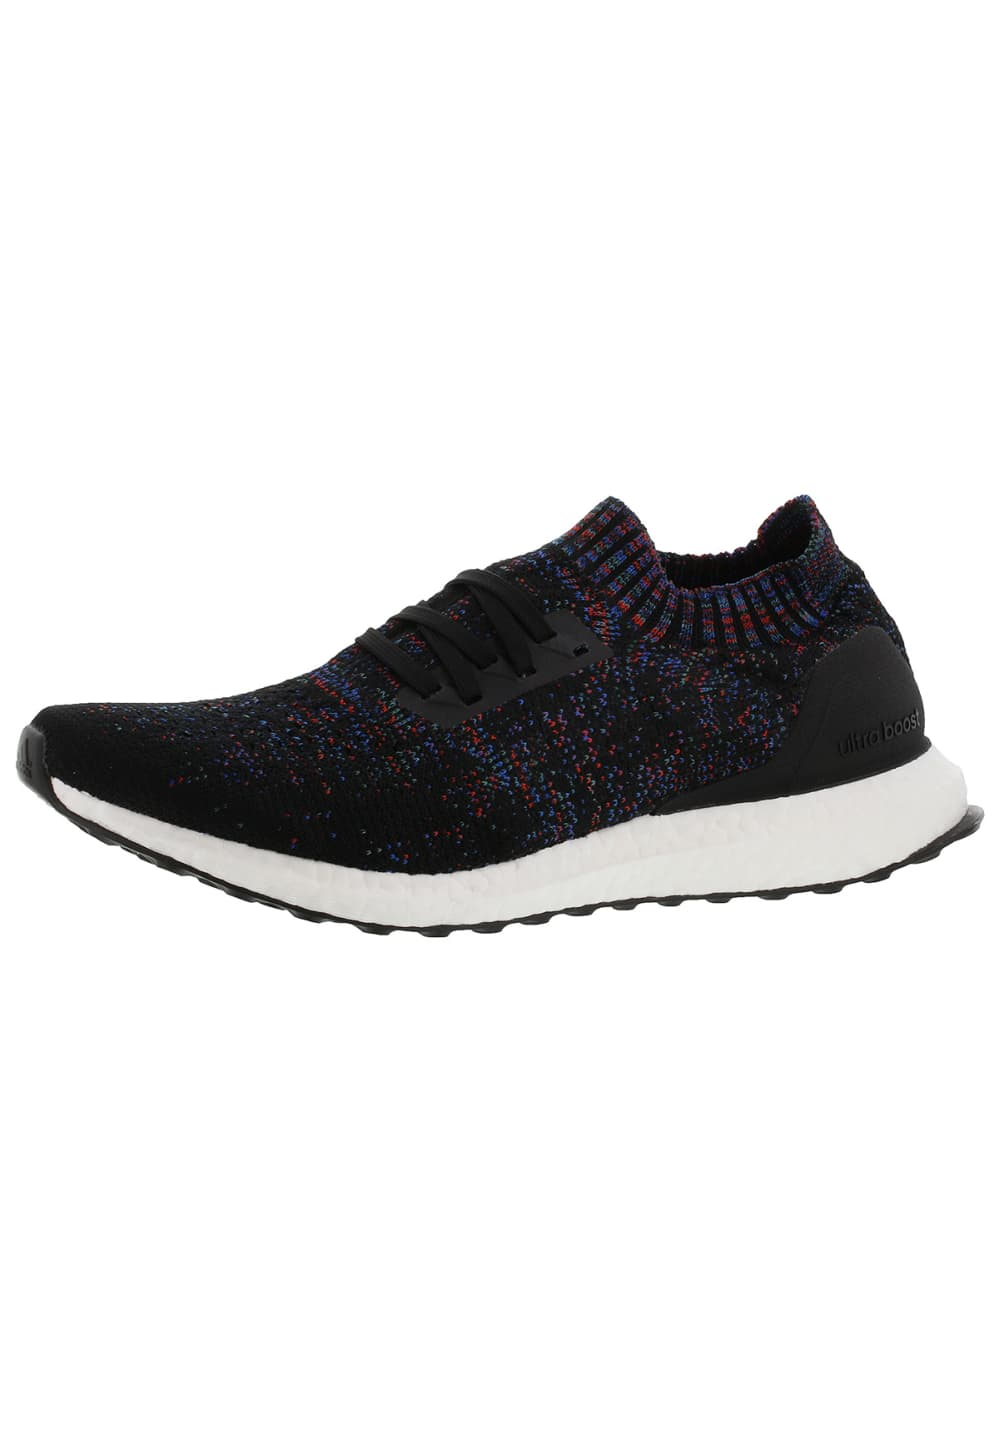 Homme Running Boost Chaussures Noir Ultra Uncaged Pour Adidas 8OkZnNwPX0